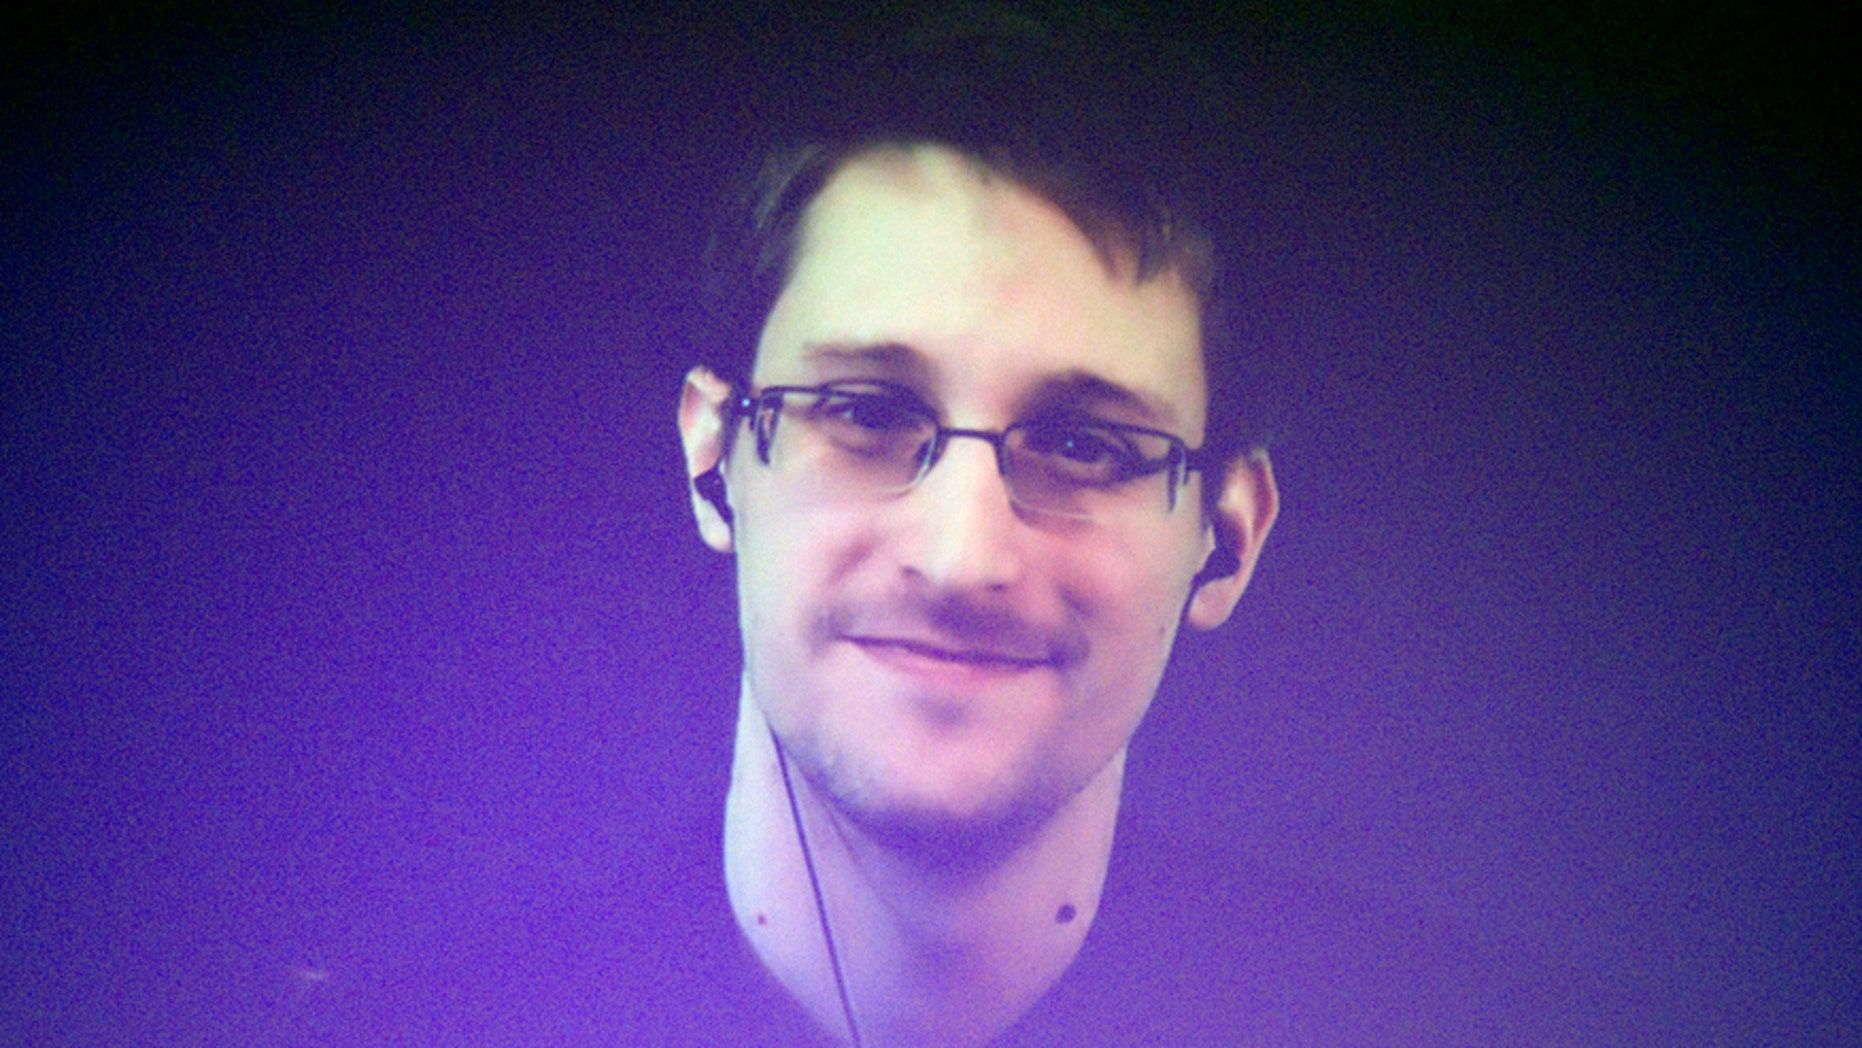 Edward Snowden, who is in Moscow, is seen on a giant screen during a live video conference for an interview as part of Amnesty International's annual Write for Rights campaign at the Gaite Lyrique in Paris Dec. 10, 2014.